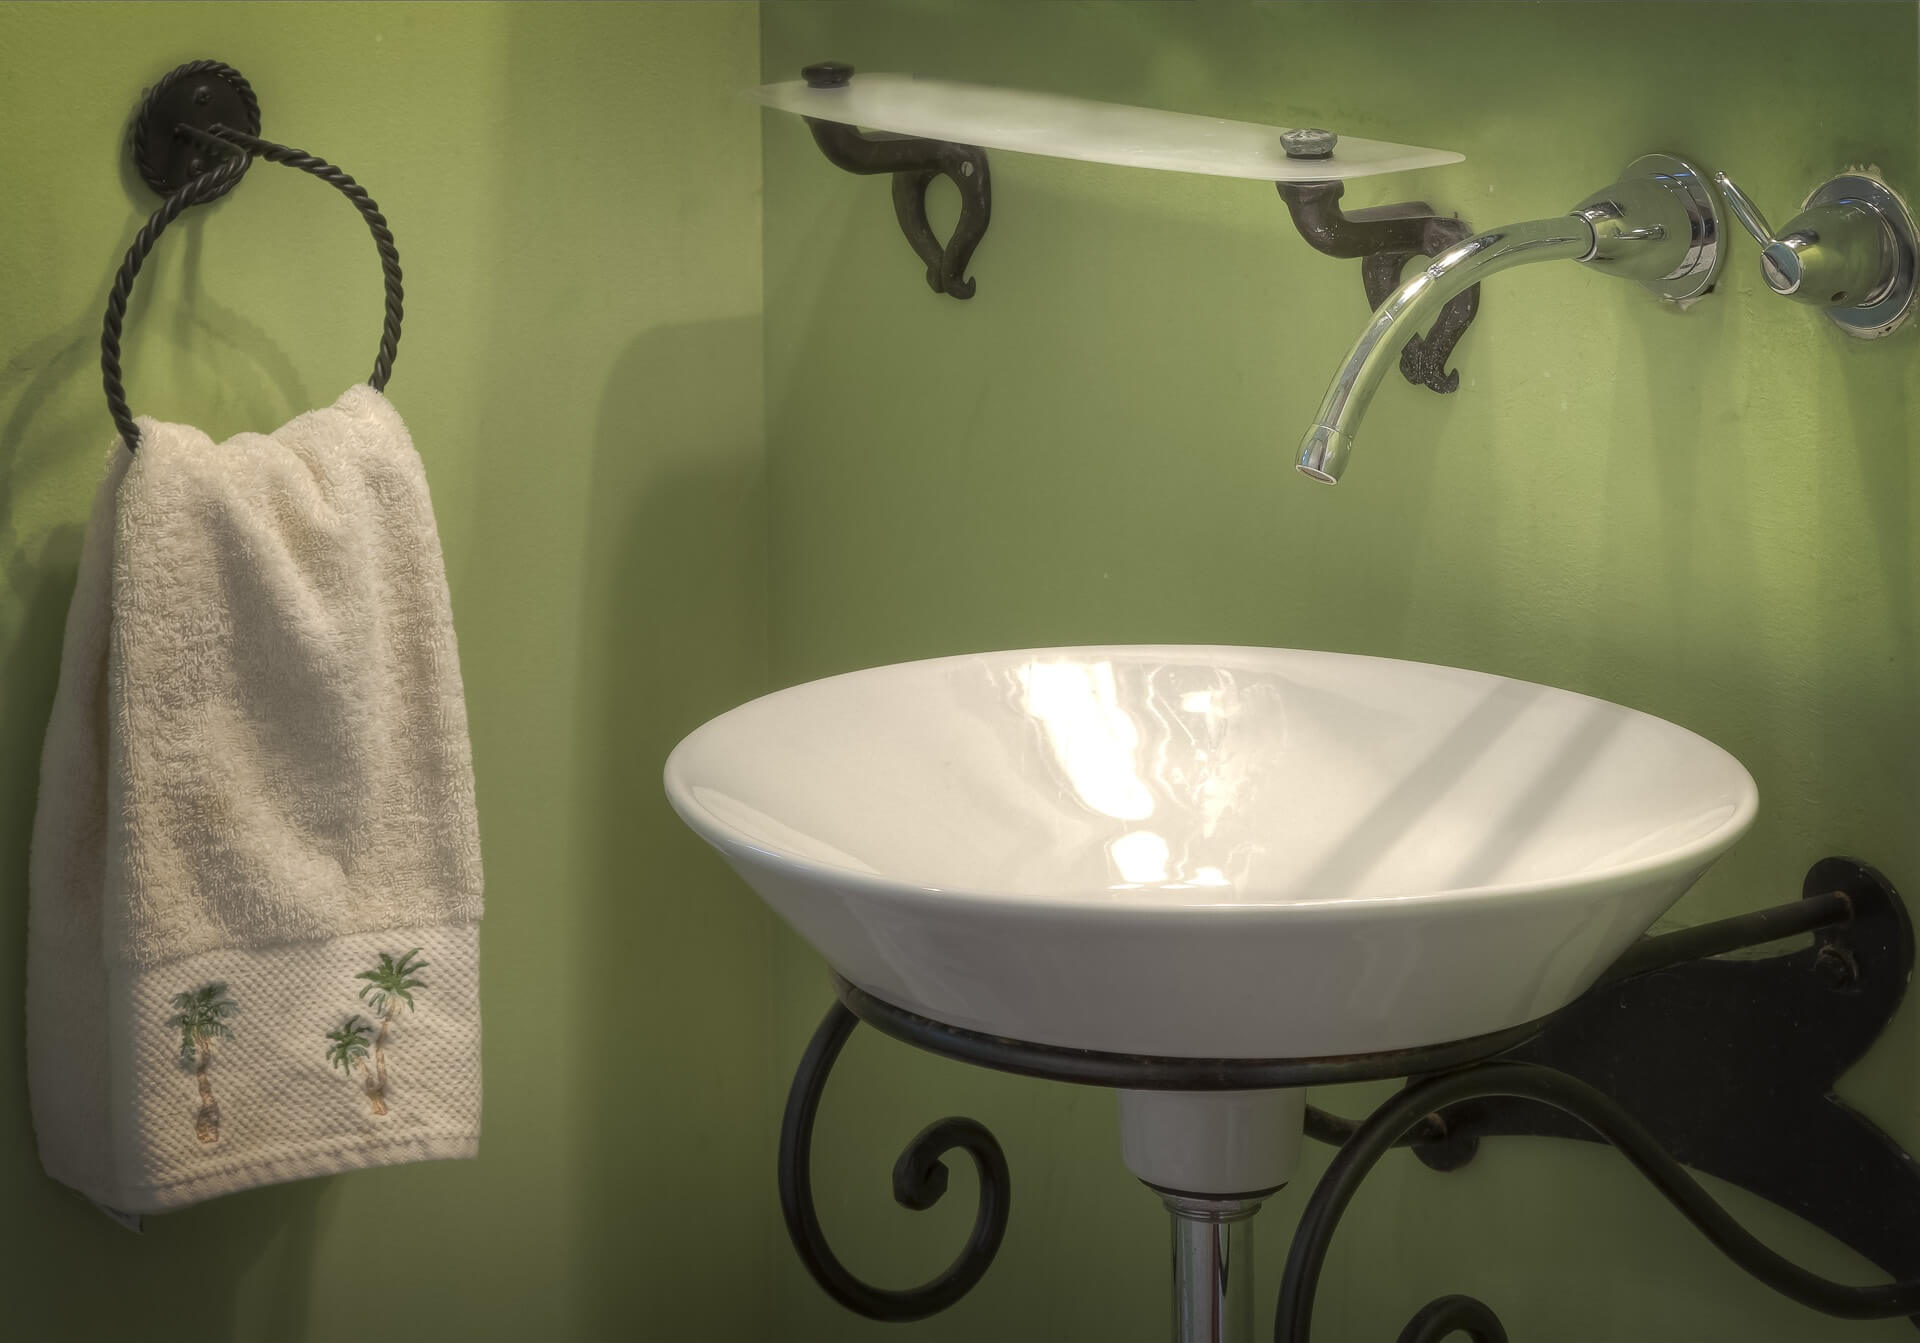 However You Decide To Decorate Your Small Bathroom, Creative Storage  Solutions Will Help You Maximise All Available Space And Keep The Whole  Place Looking ...